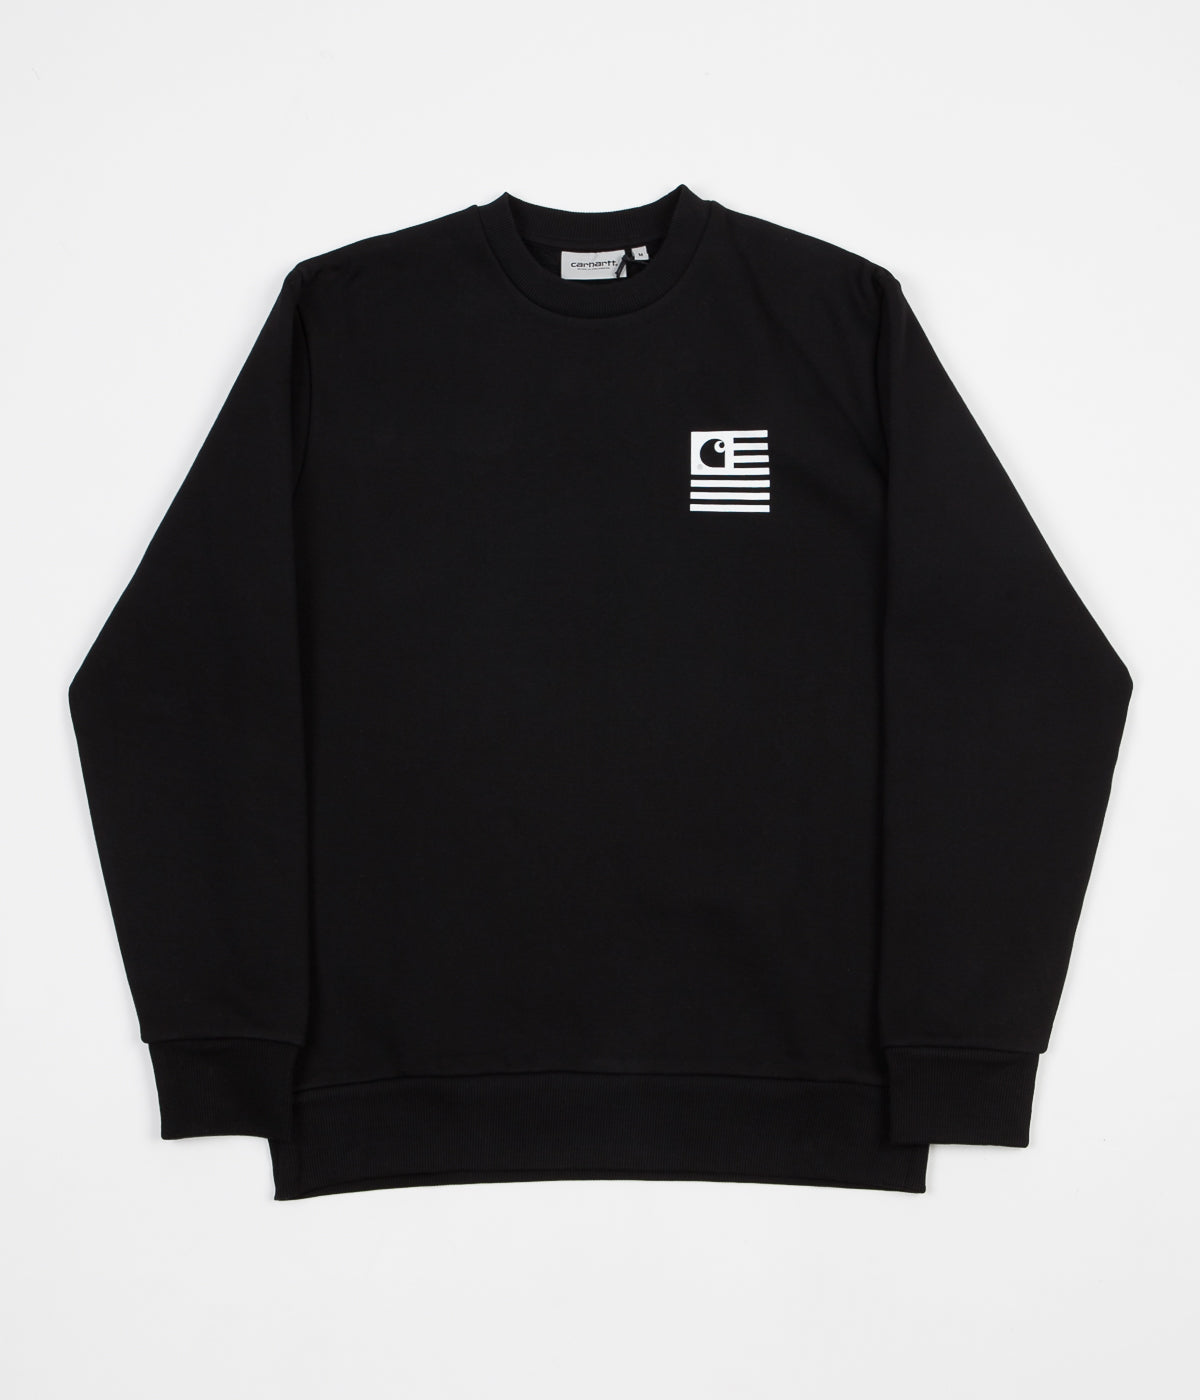 Carhartt State Sports Crewneck Sweatshirt - Black